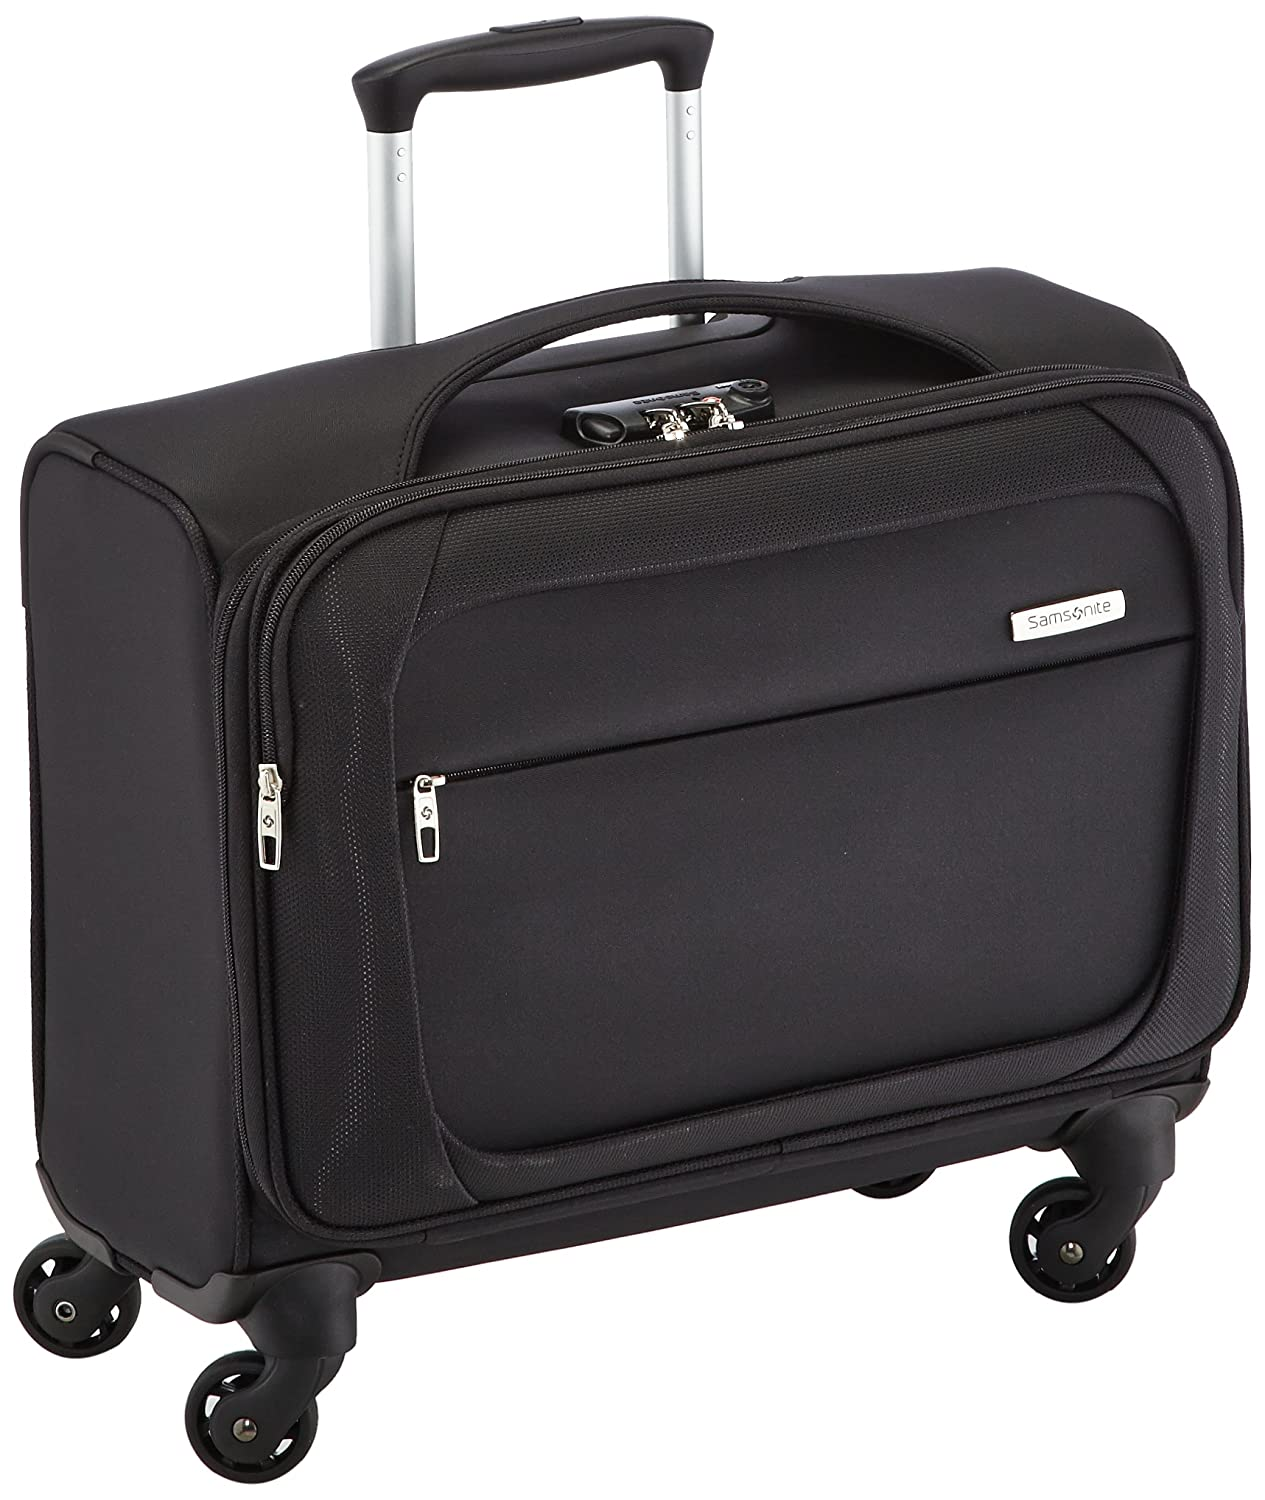 Samsonite Maletas y trolleys 53494-1041 Negro 26 liters: Amazon.es: Equipaje